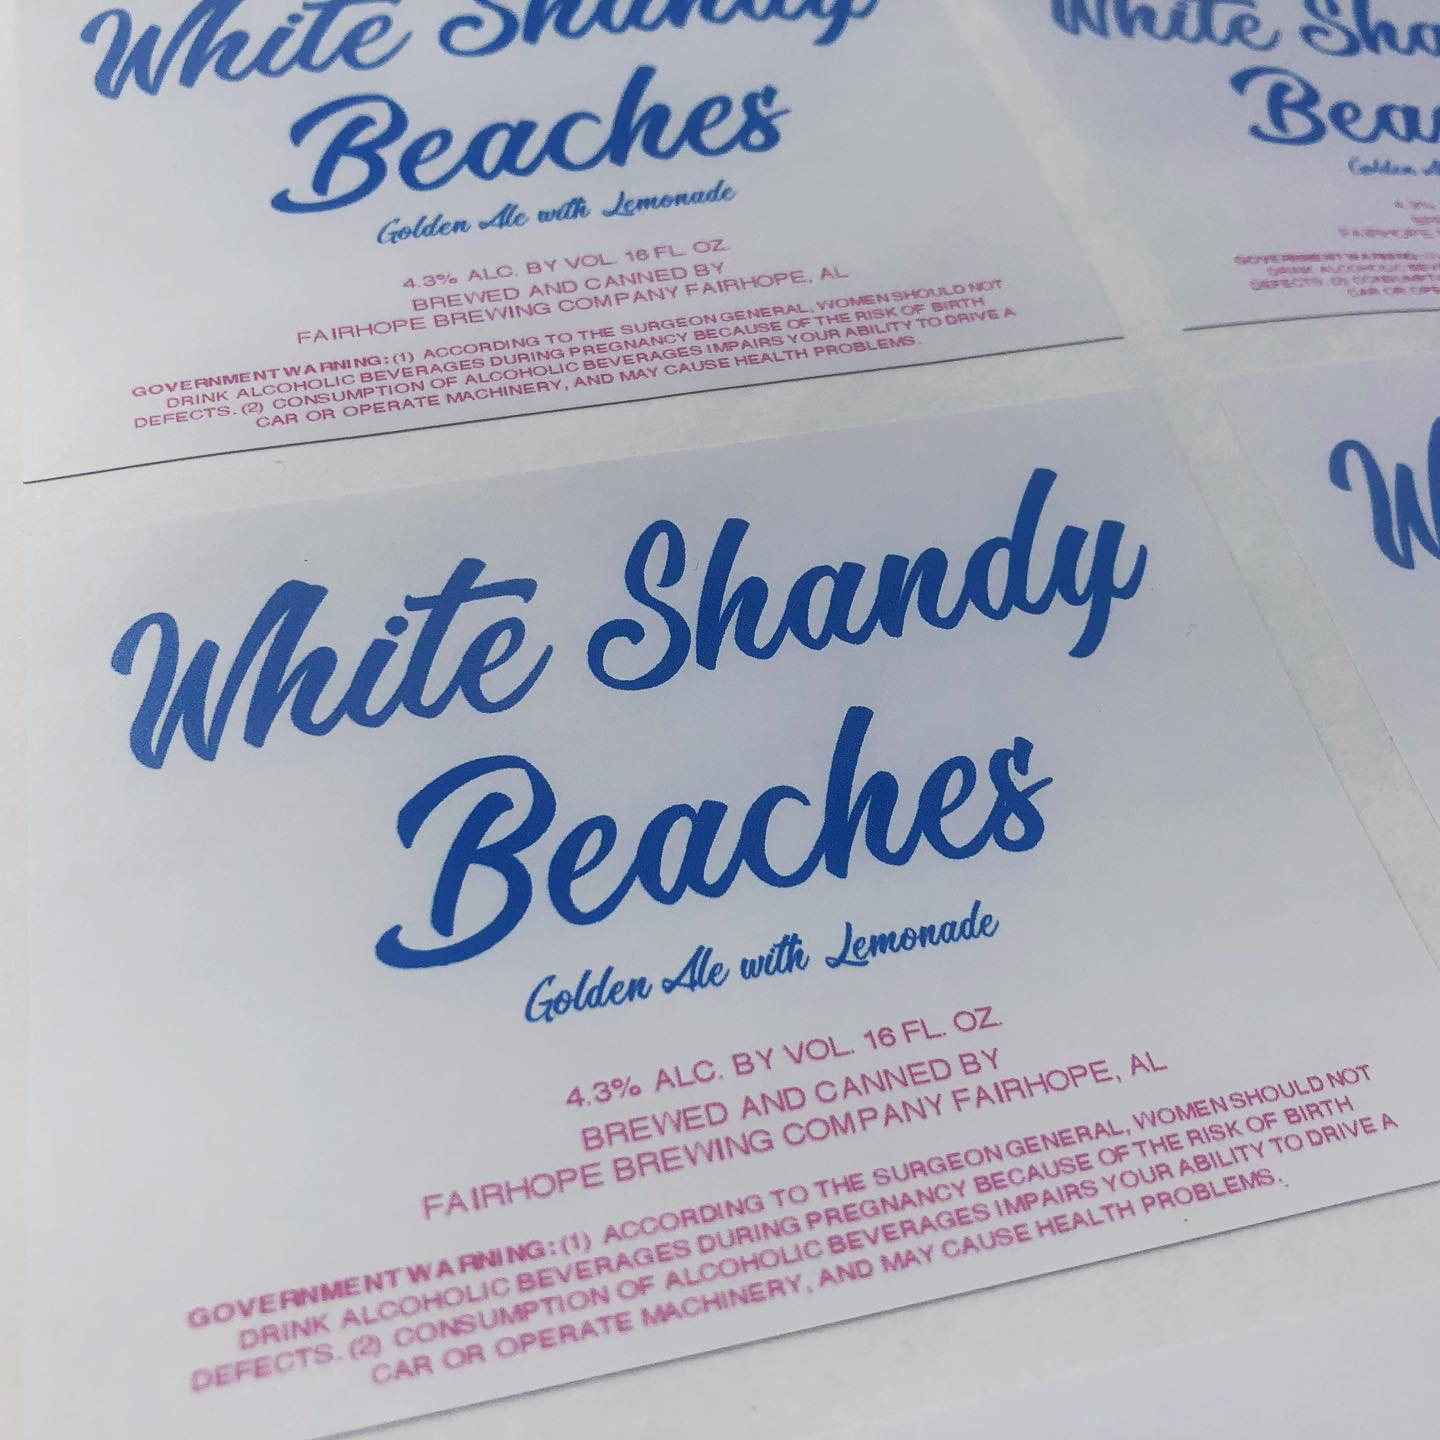 White Shandy Beaches